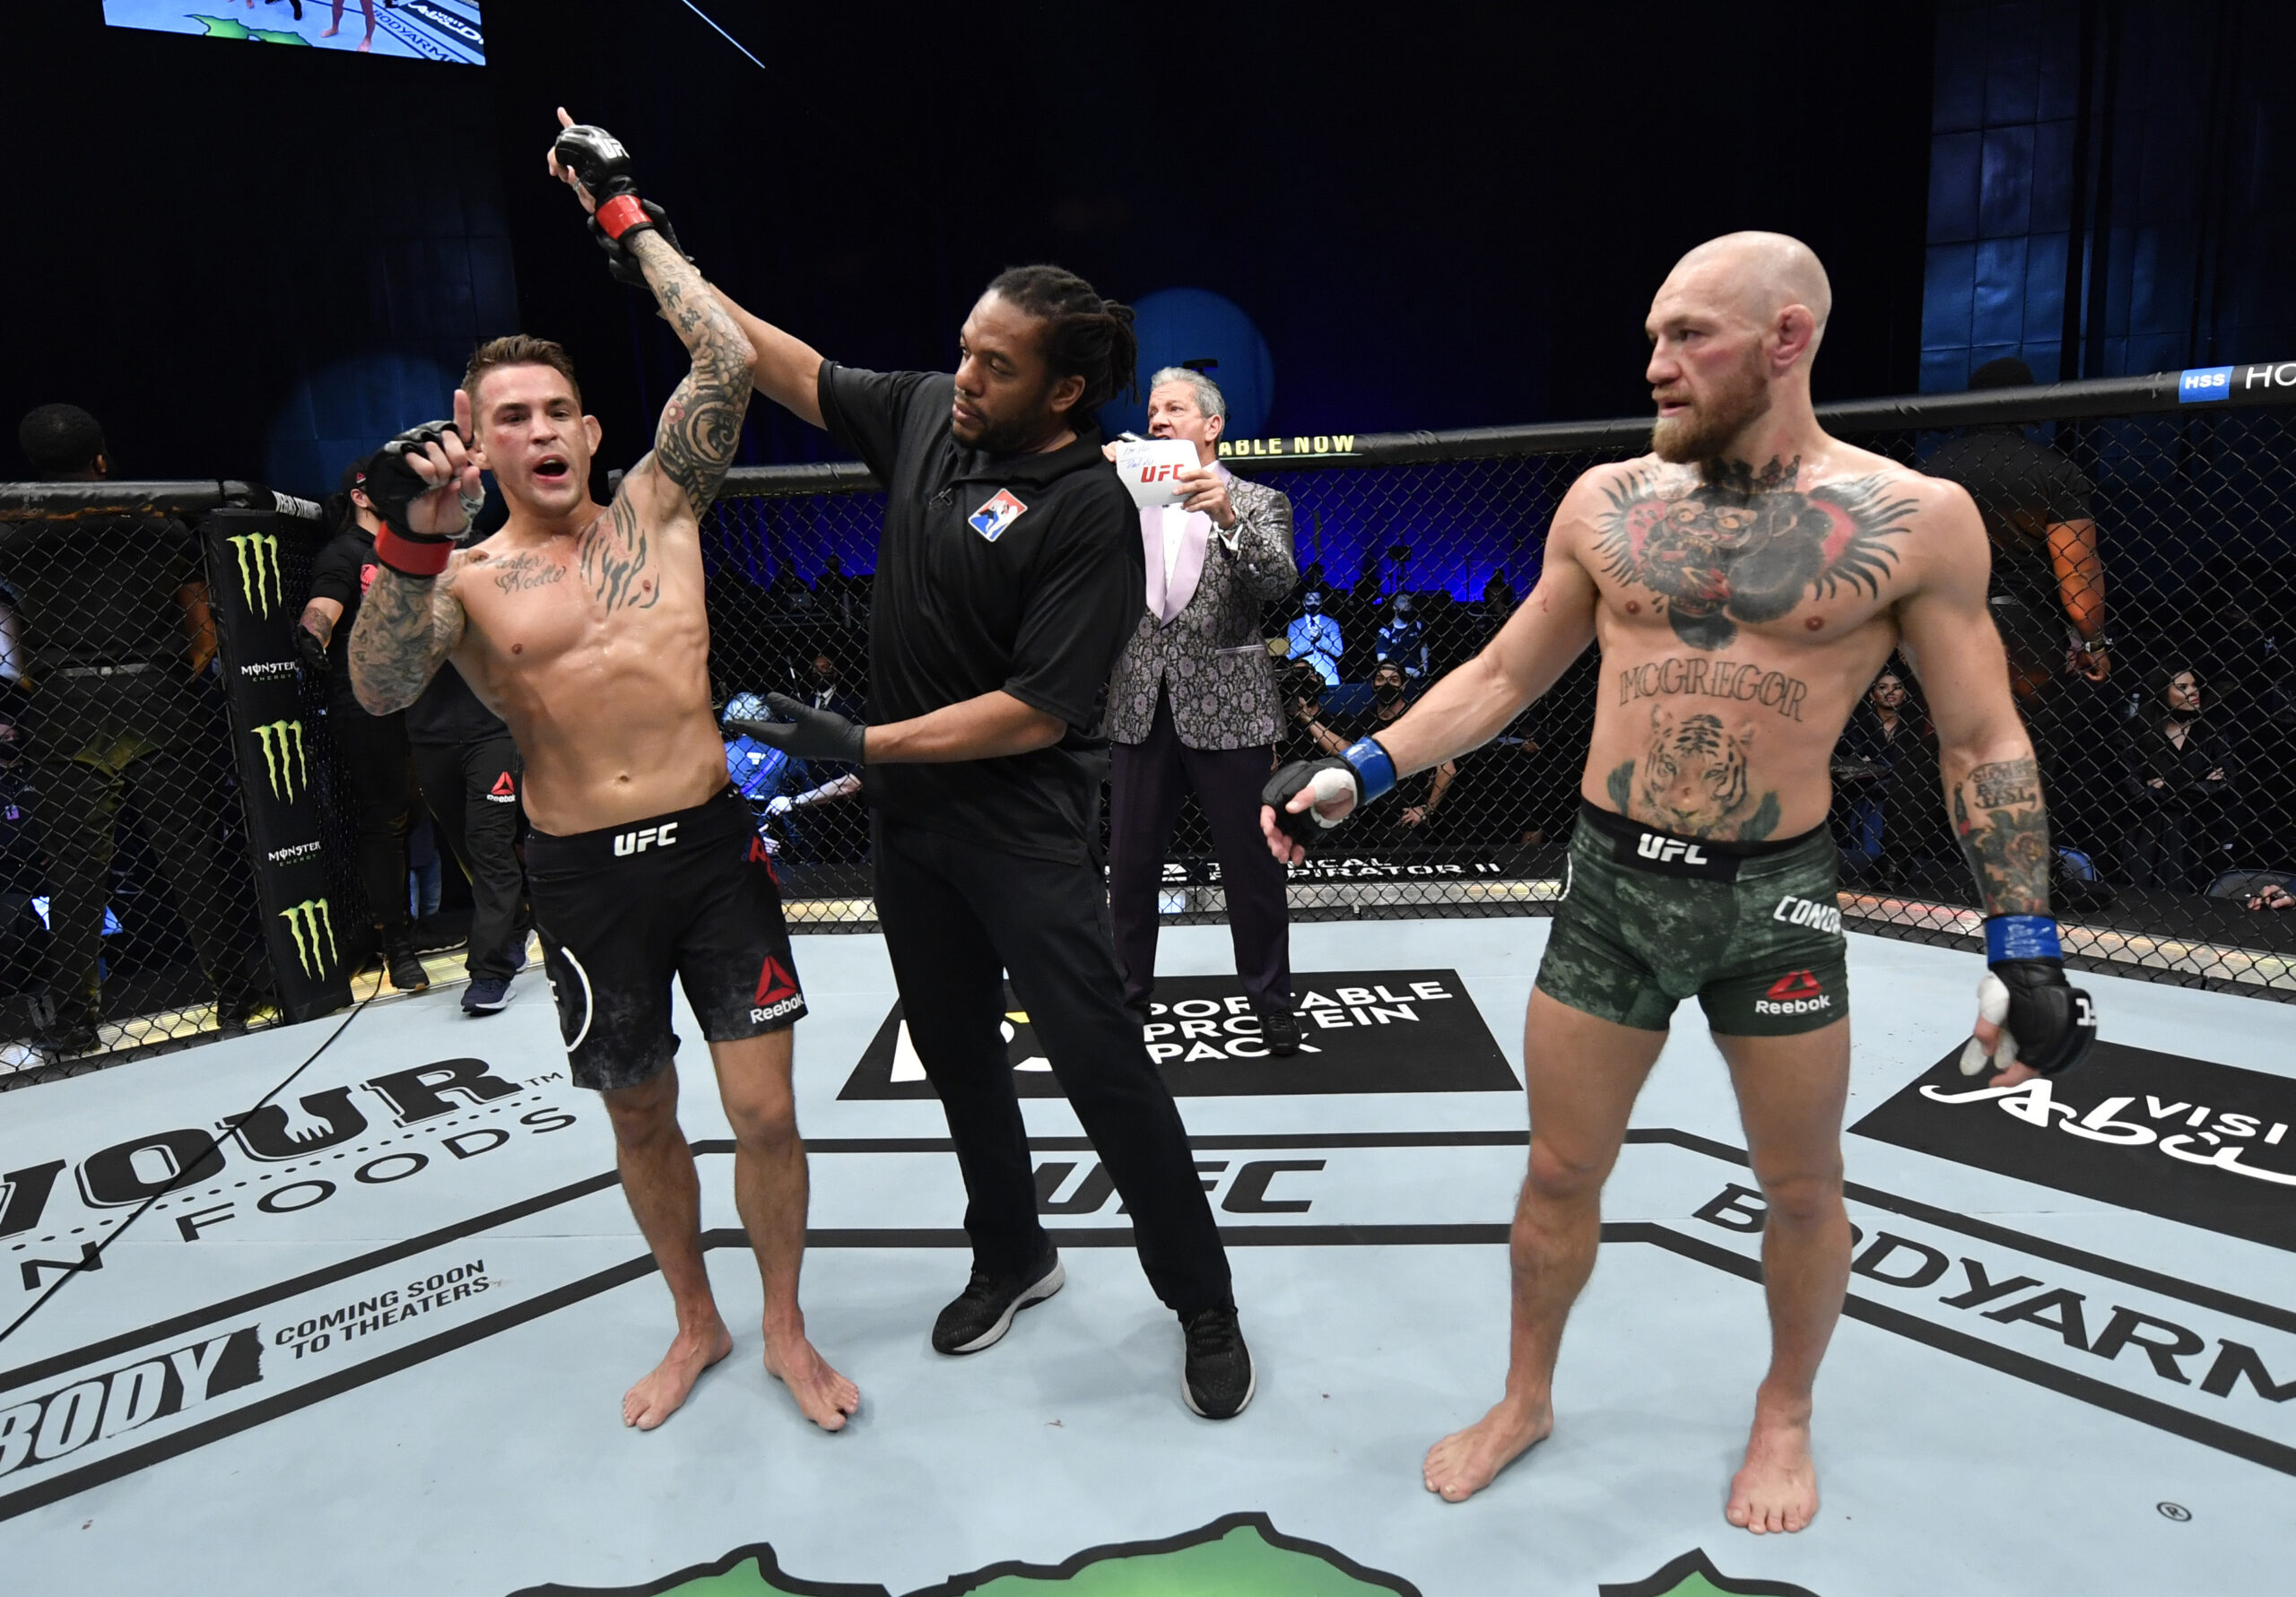 Nba Players React To Dustin Poirier'S Knockout Of Conor Mcgregor